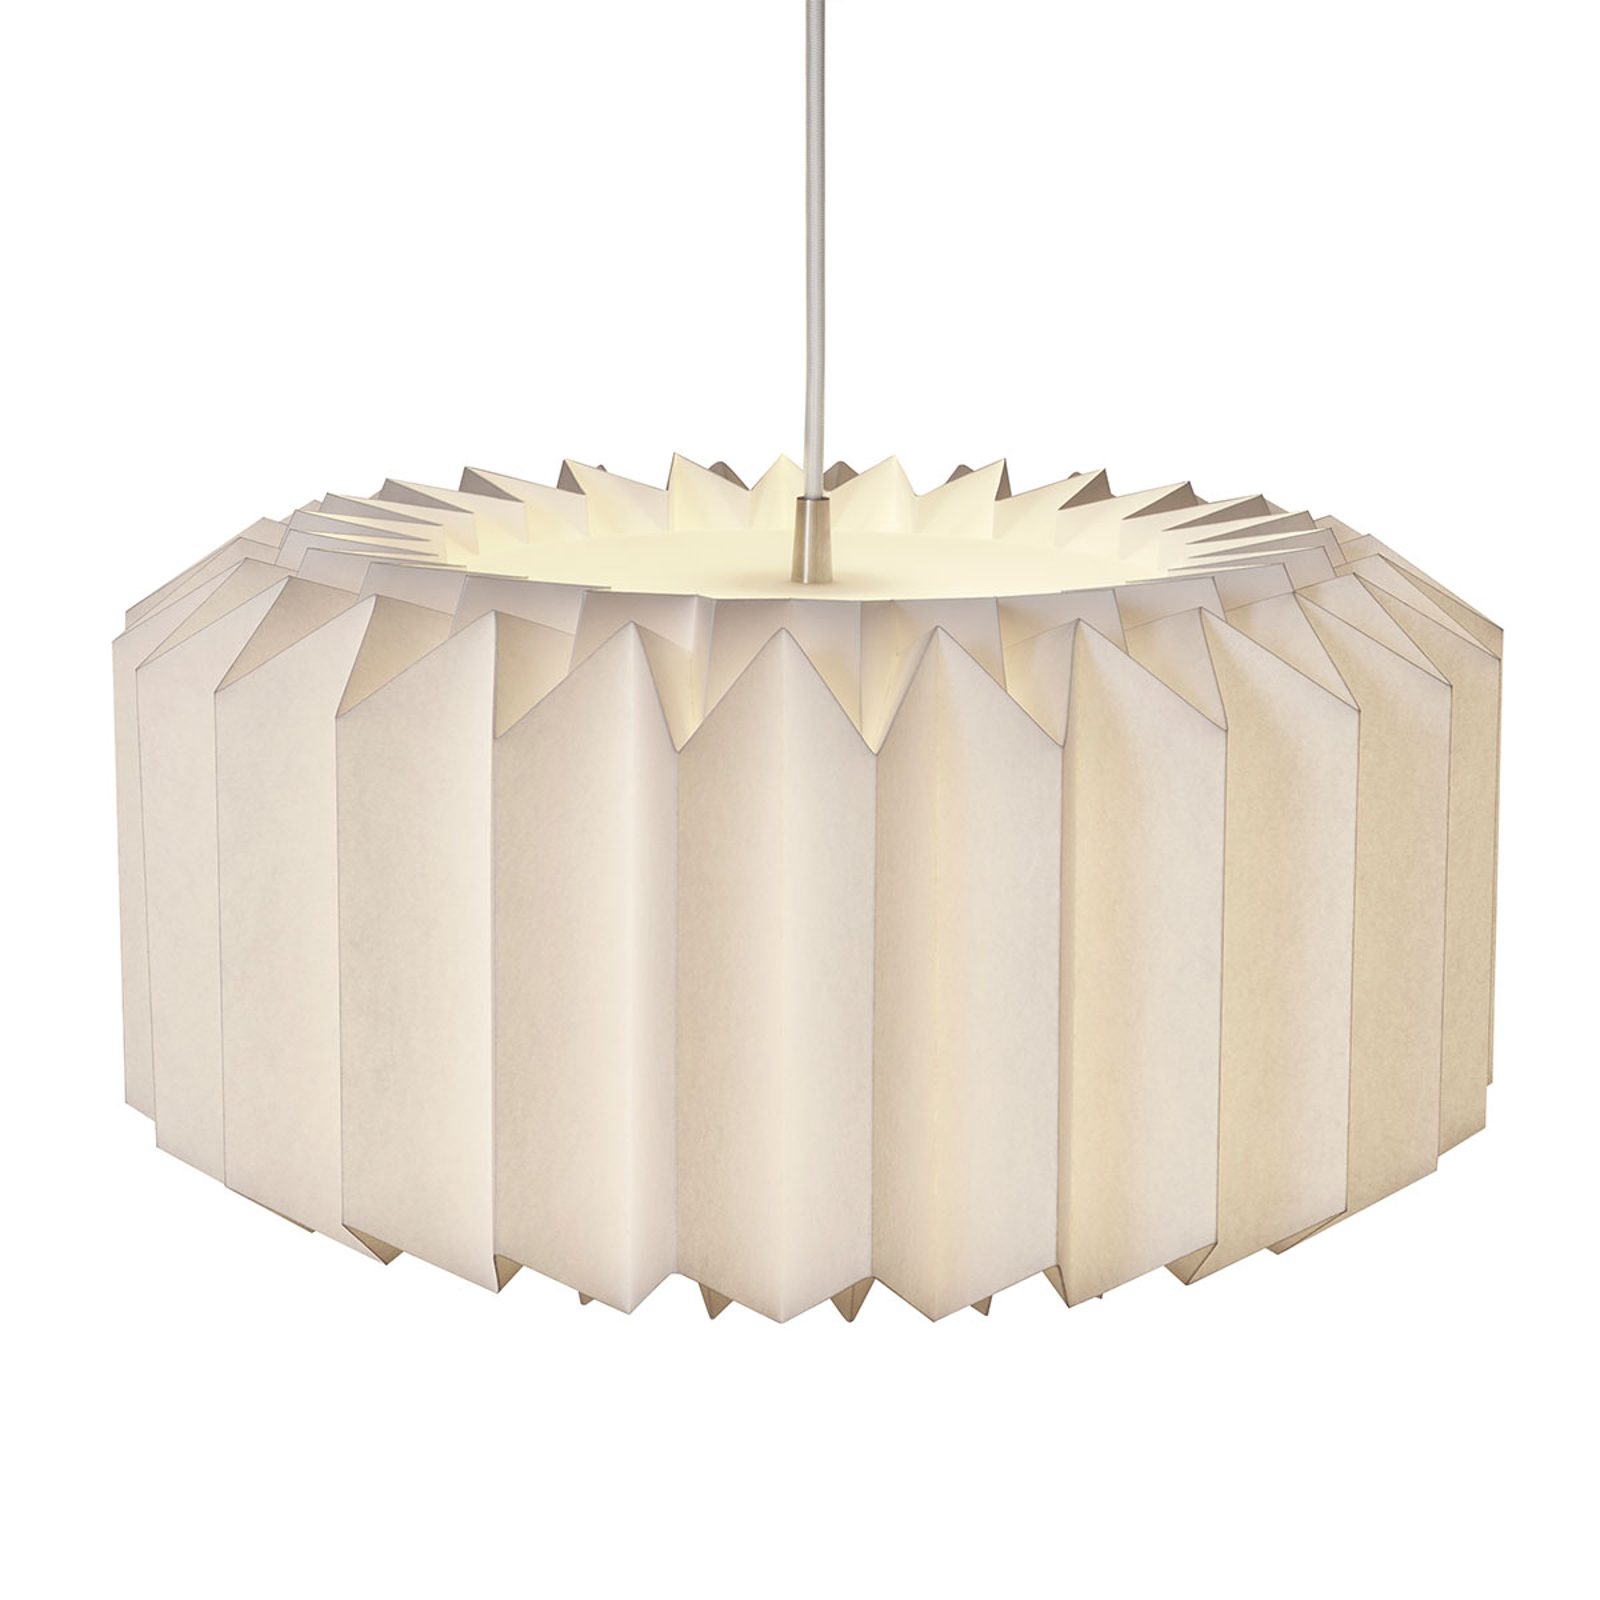 LE KLINT Onefivefour hanglamp in Wit, large